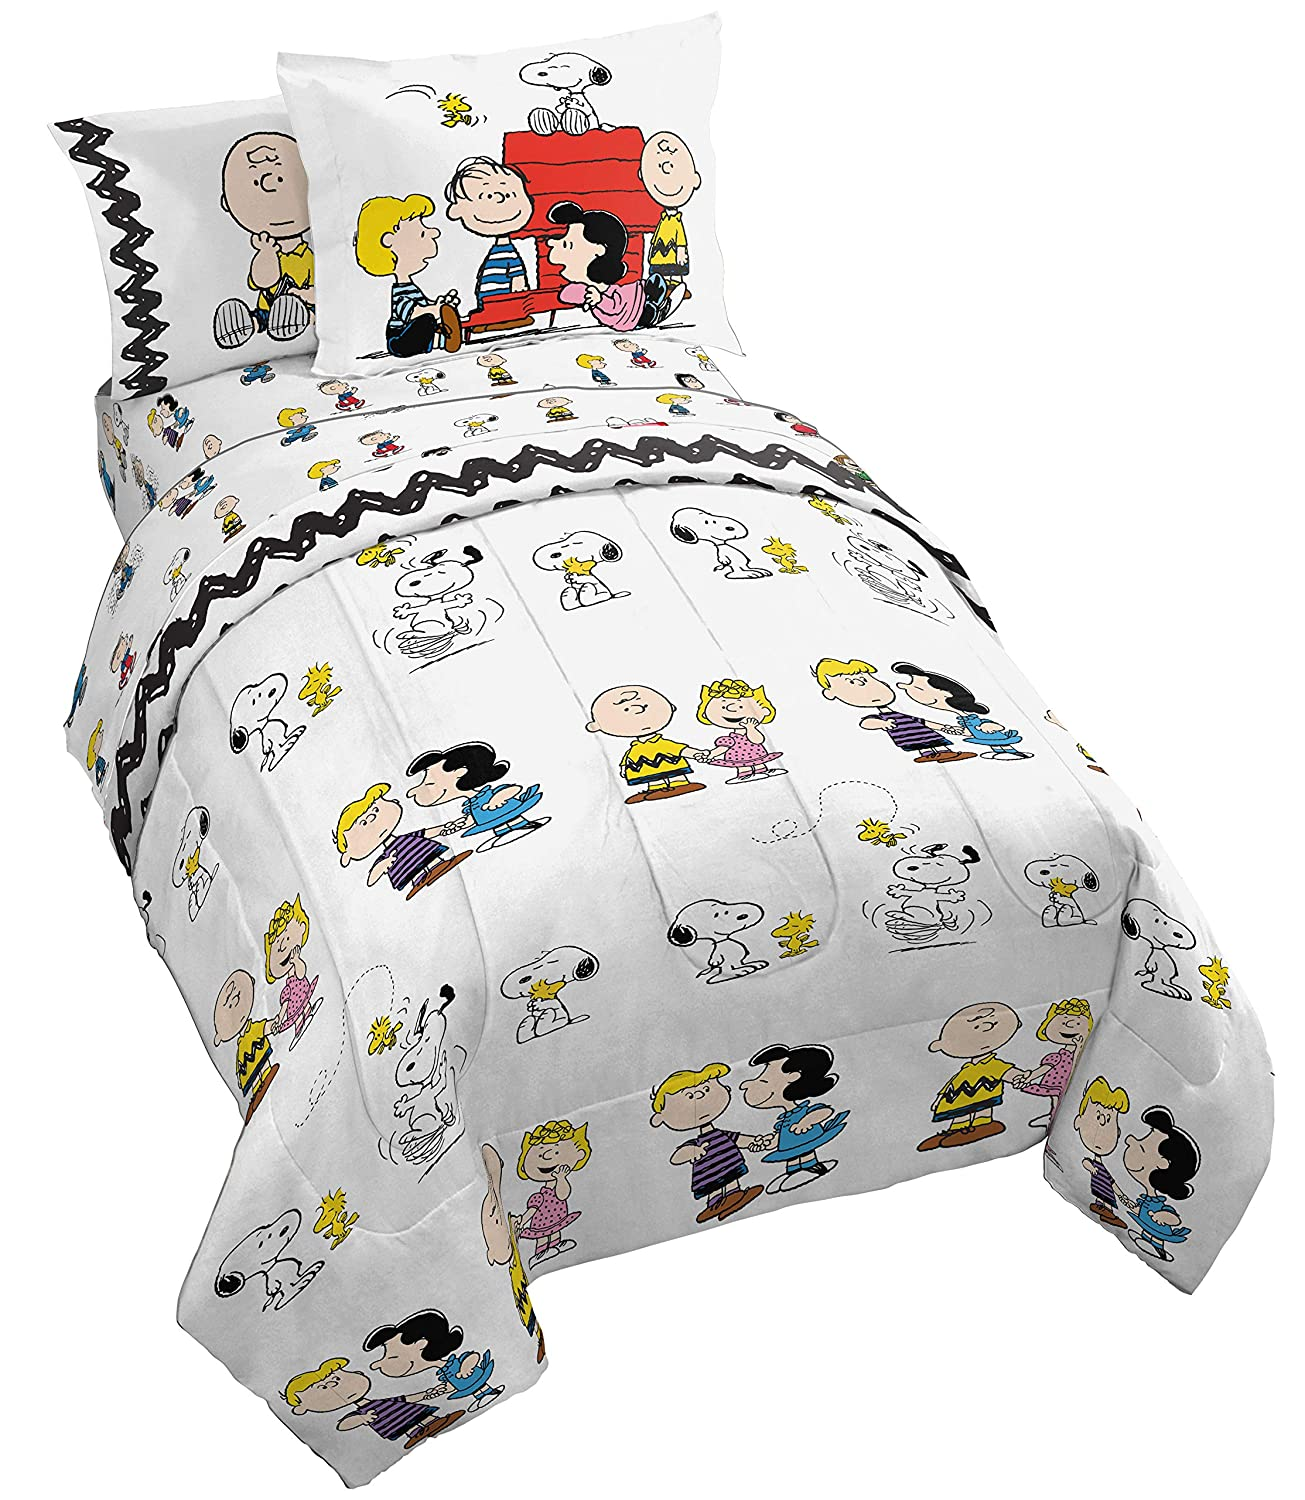 Peanuts Classic Pals 5 Piece Twin Bed Set - Includes Reversible Comforter & Sheet Set - Bedding Features Snoopy & Charlie Brown - Super Soft Fade Resistant Microfiber - (Official Peanuts Product)